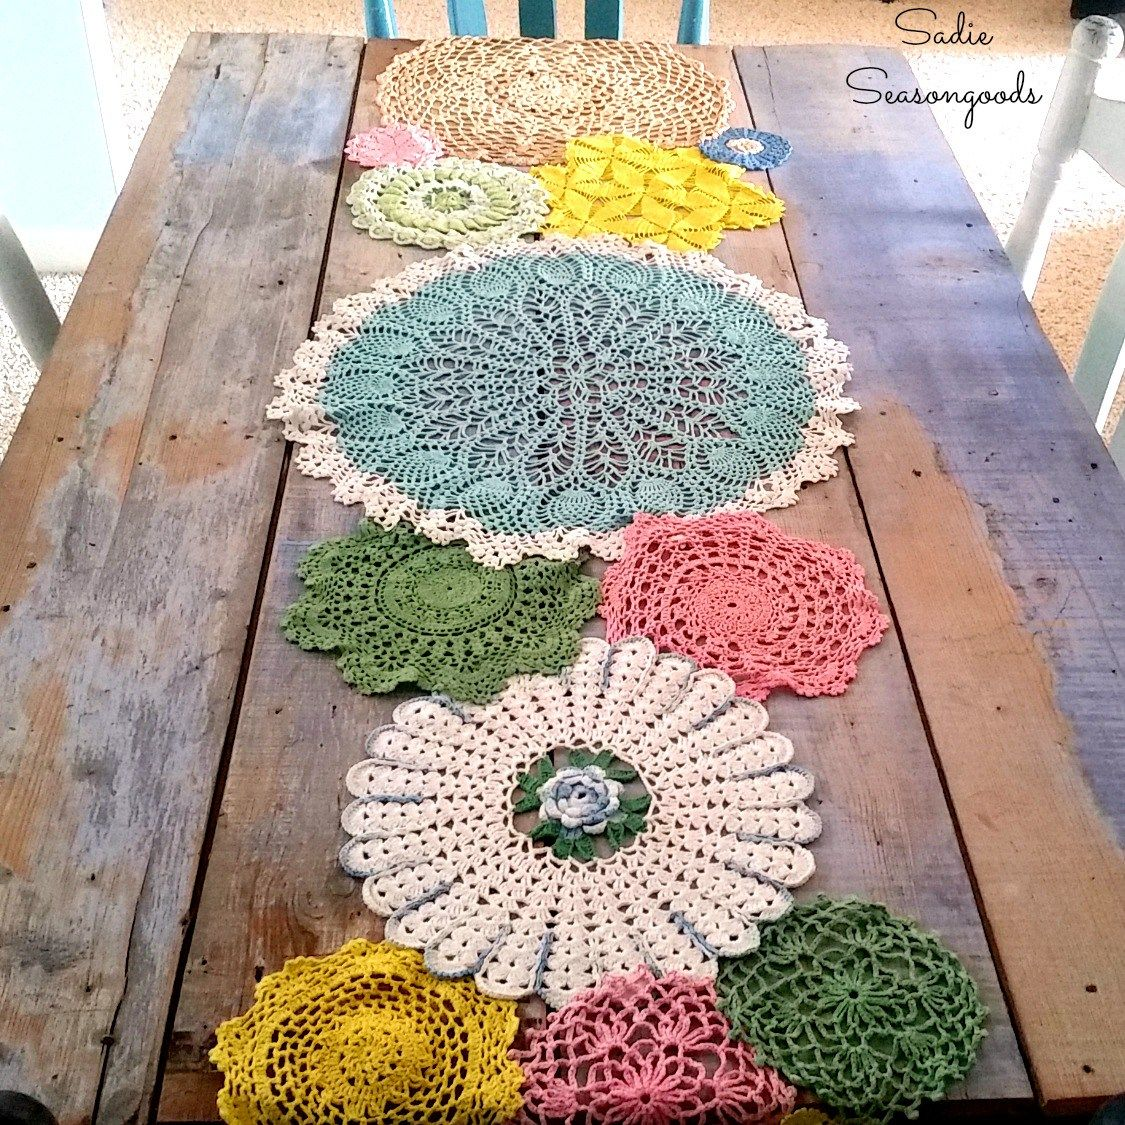 Antique japanese tea table  Vintage crocheted doilies to be dyed and repurposed or upcycled into